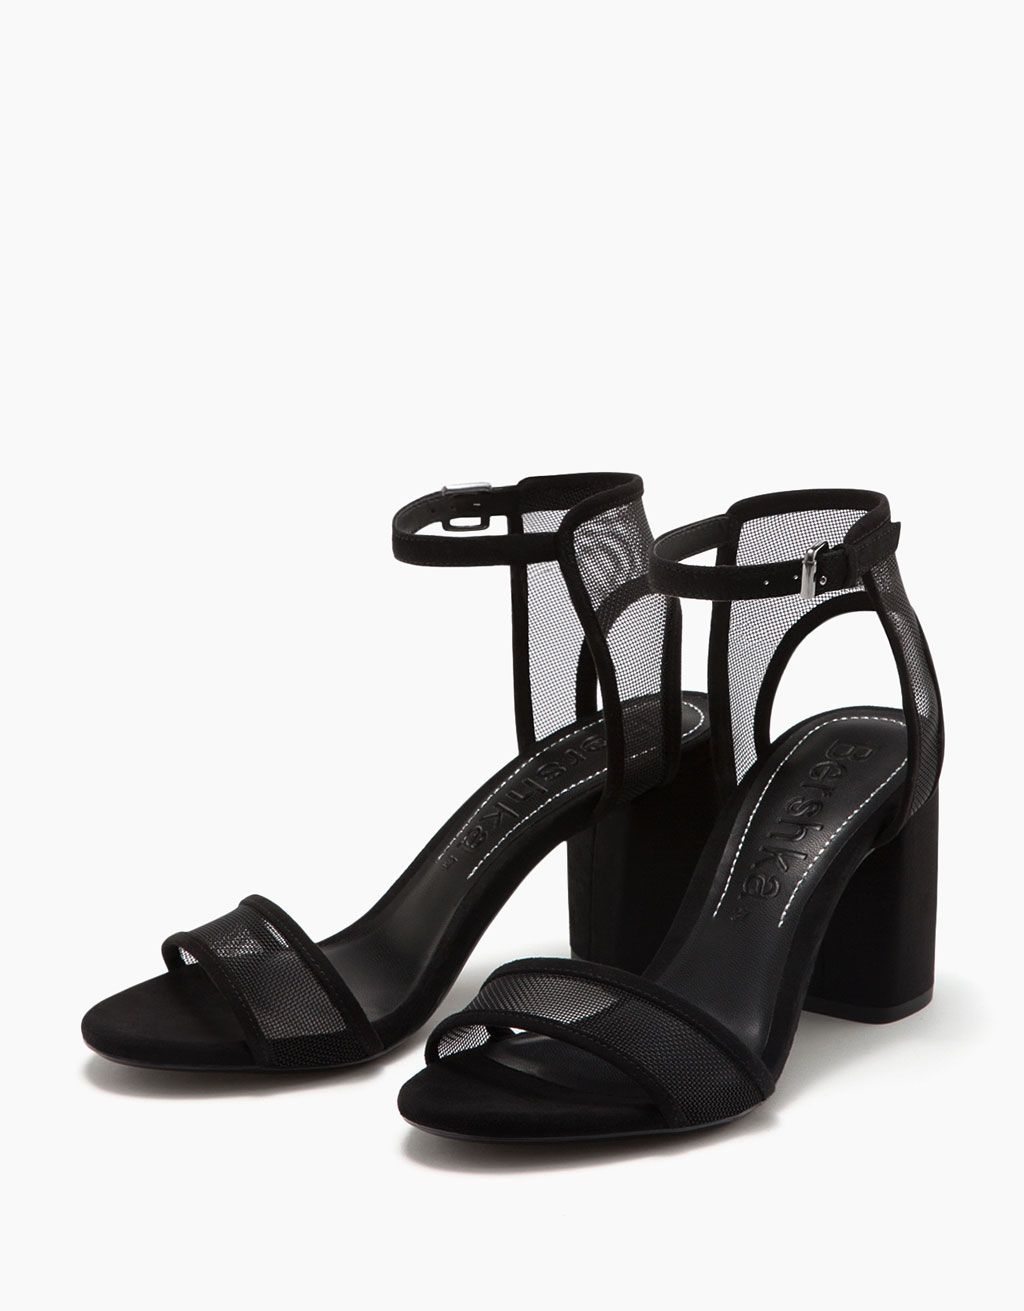 c596c273009 Mesh mid-heel sandals with ankle straps. Discover this and many more items  in Bershka with new products every week